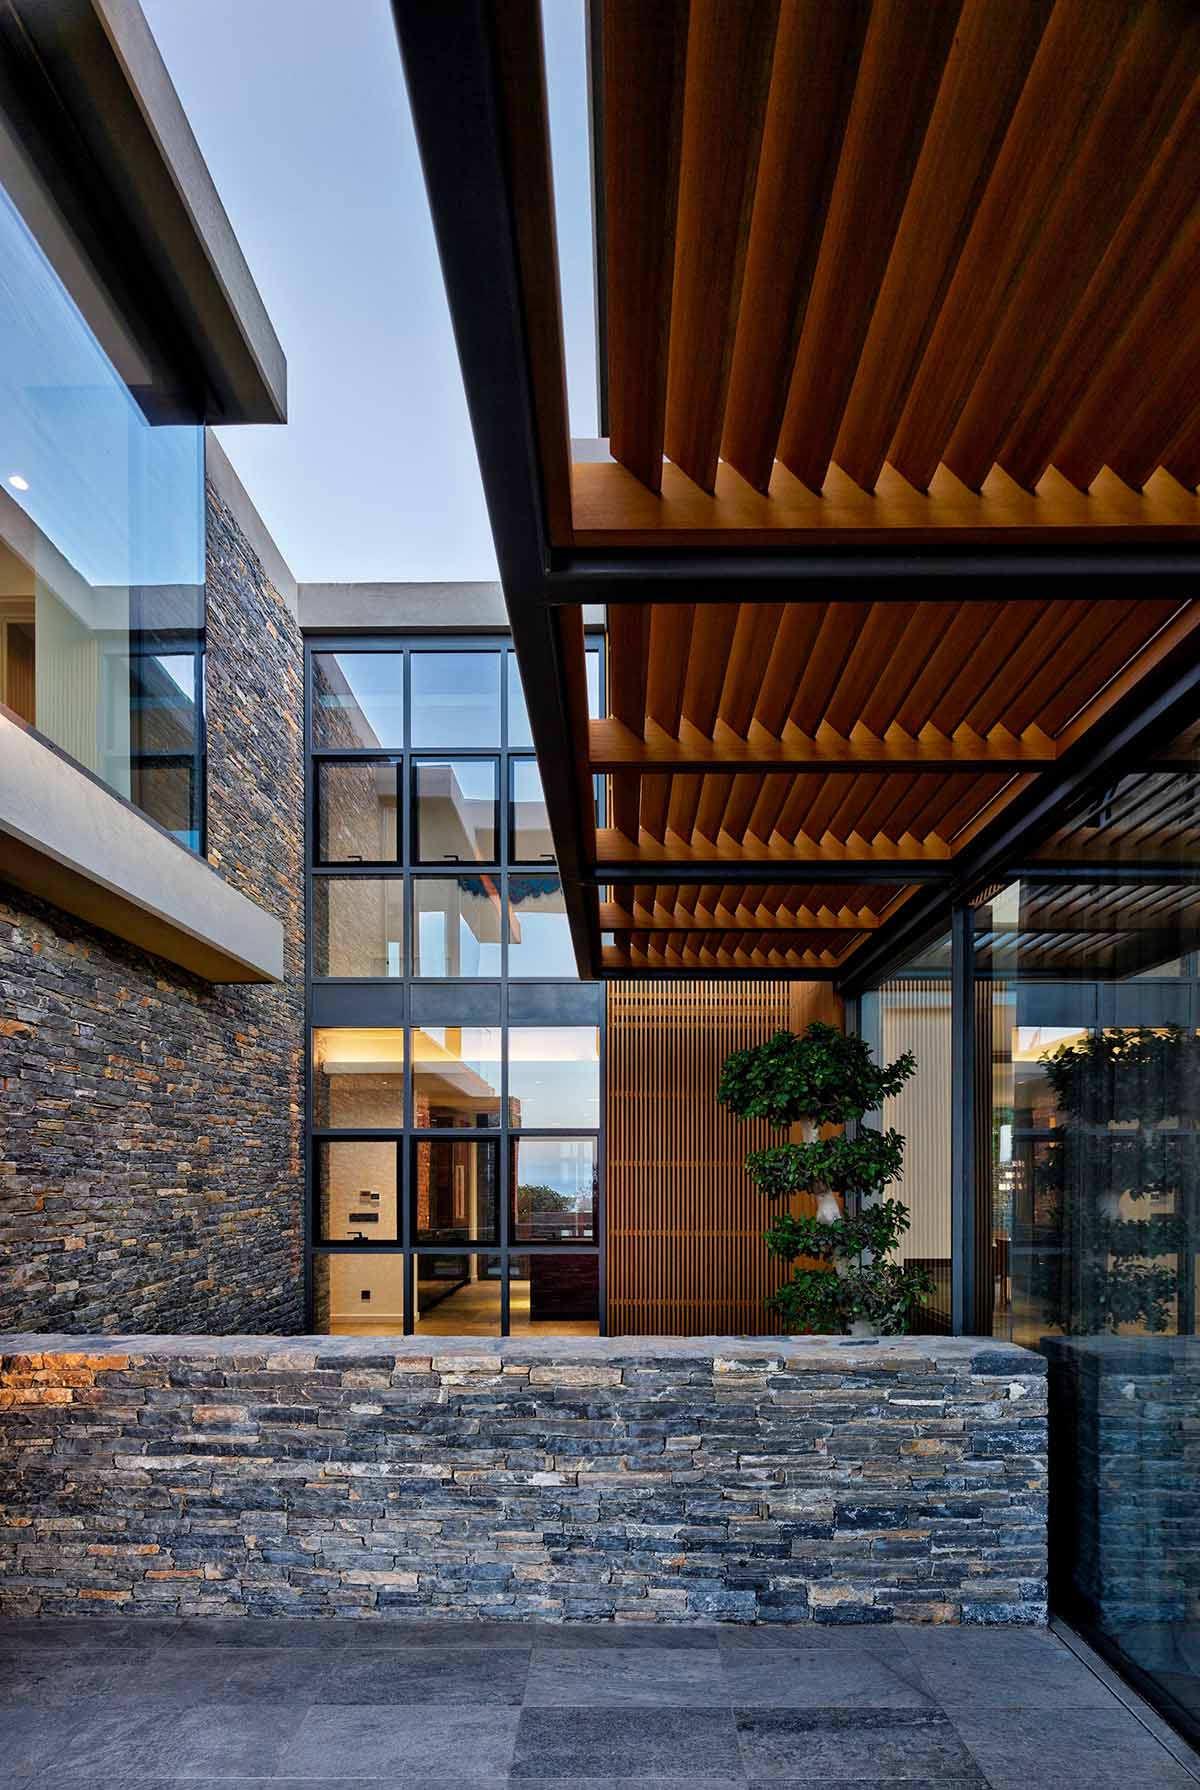 © Cemal Emden, courtesy EAA-Emre Arolat Architecture The design features a combination of stone, wood, glass and exposed concrete. The choice of materials and the way that the buildings' volumes fit into the hillside were conceived to create  a complex in harmony with the natural context.